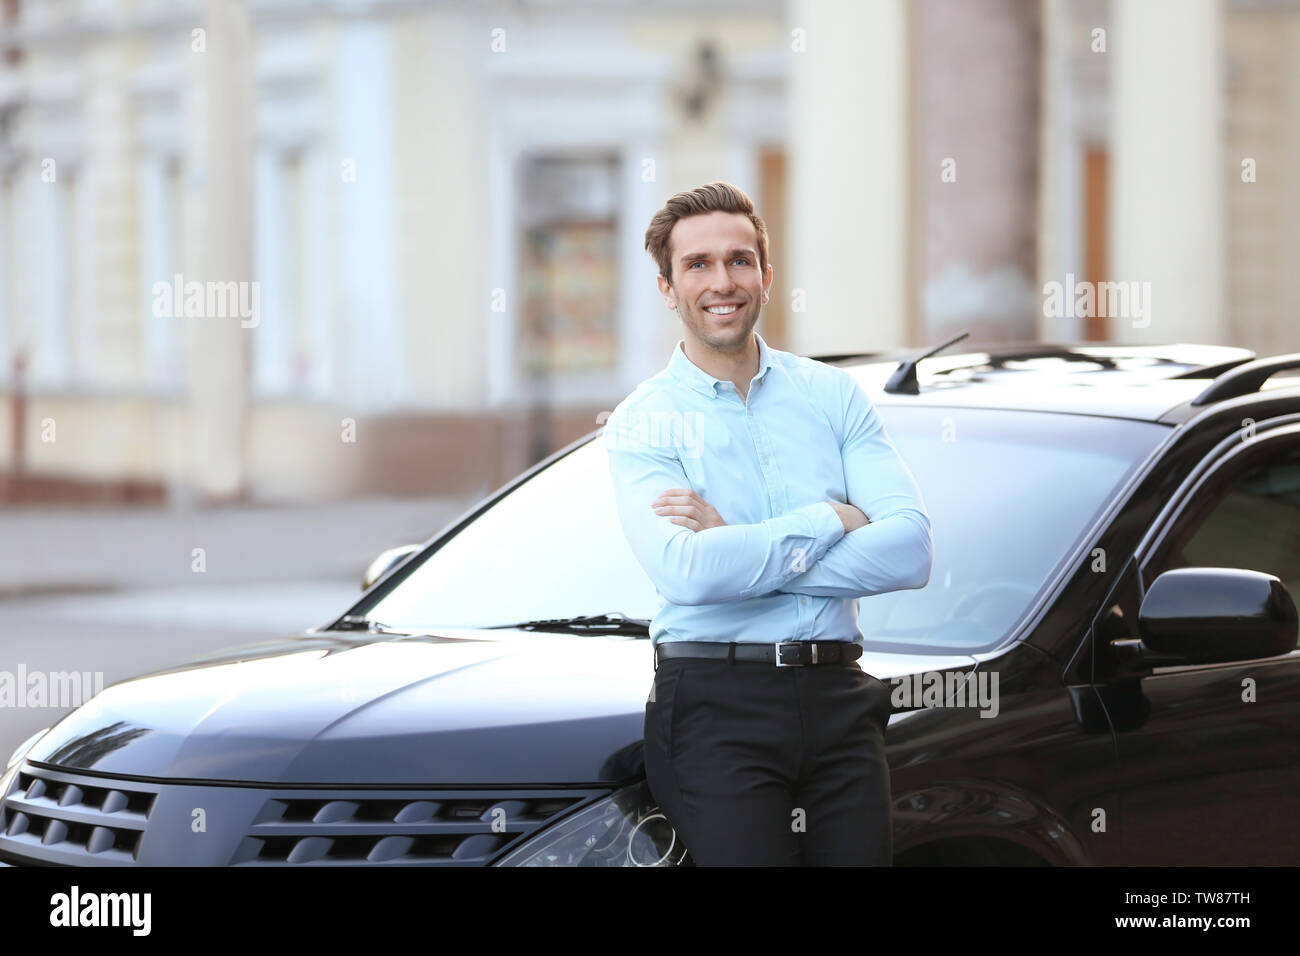 Man in formal wear standing near car outdoors - Stock Image